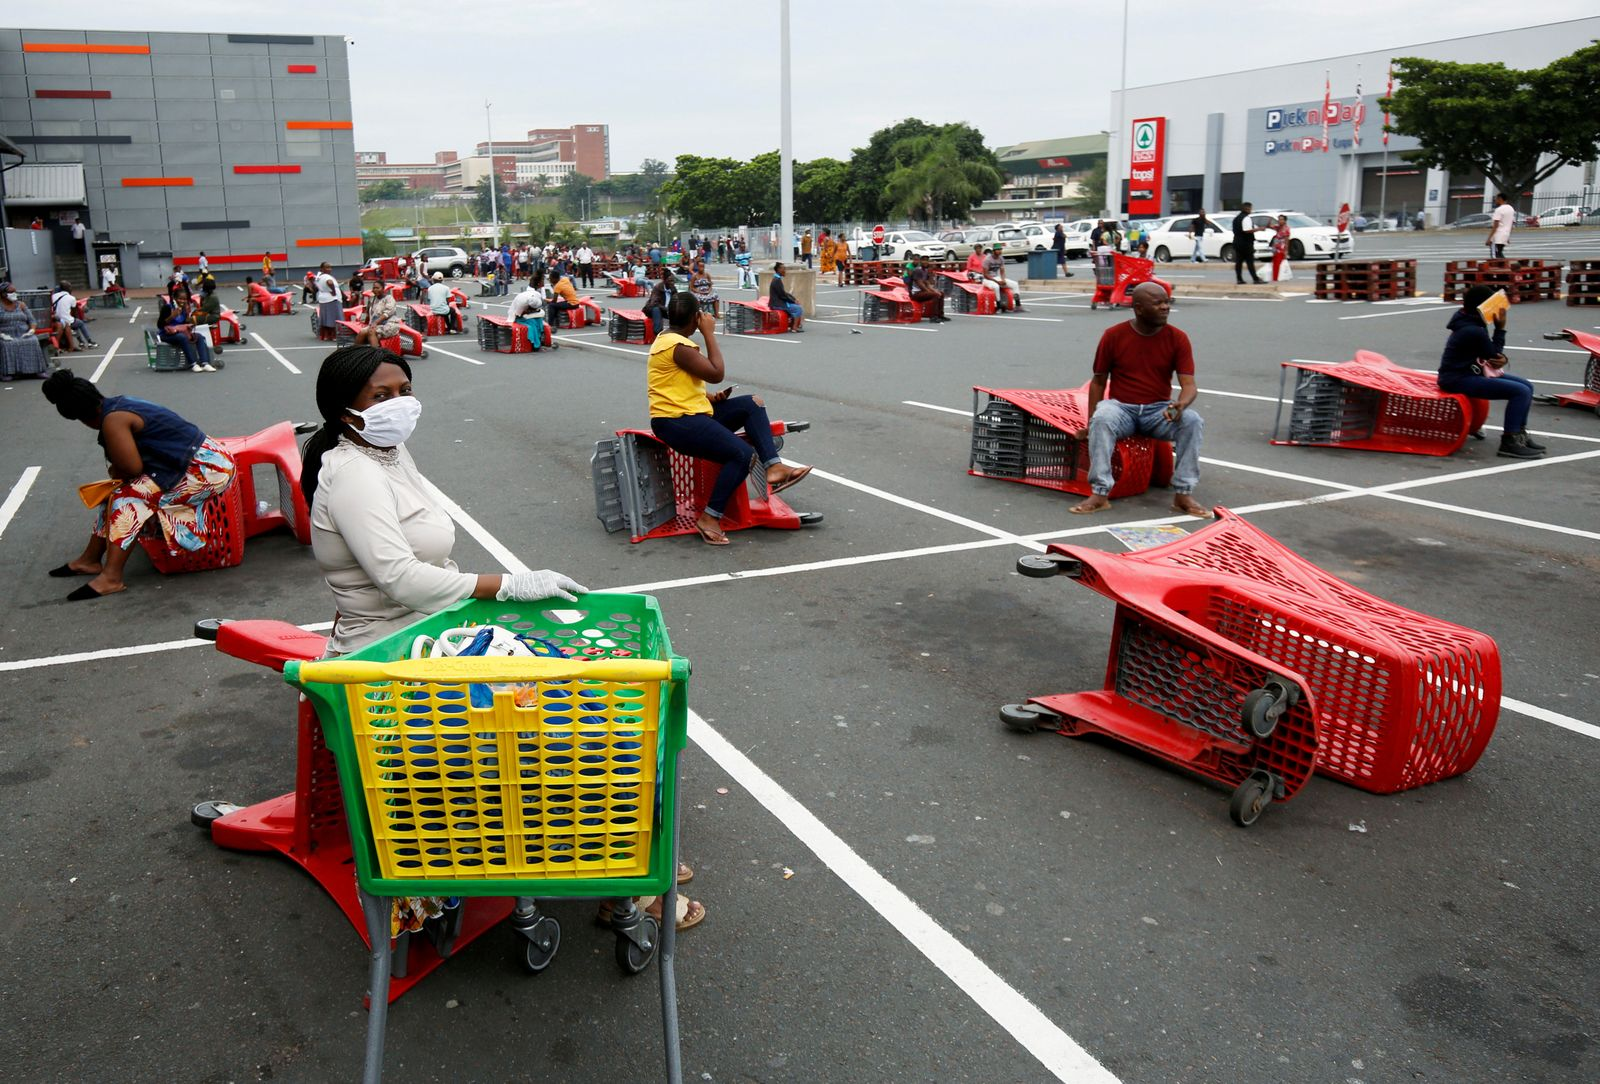 Shoppers queue at a grocery store during a nationwide 21 day lockdown in an attempt to contain the coronavirus disease (COVID-19) outbreak in Chatsworth near Durban